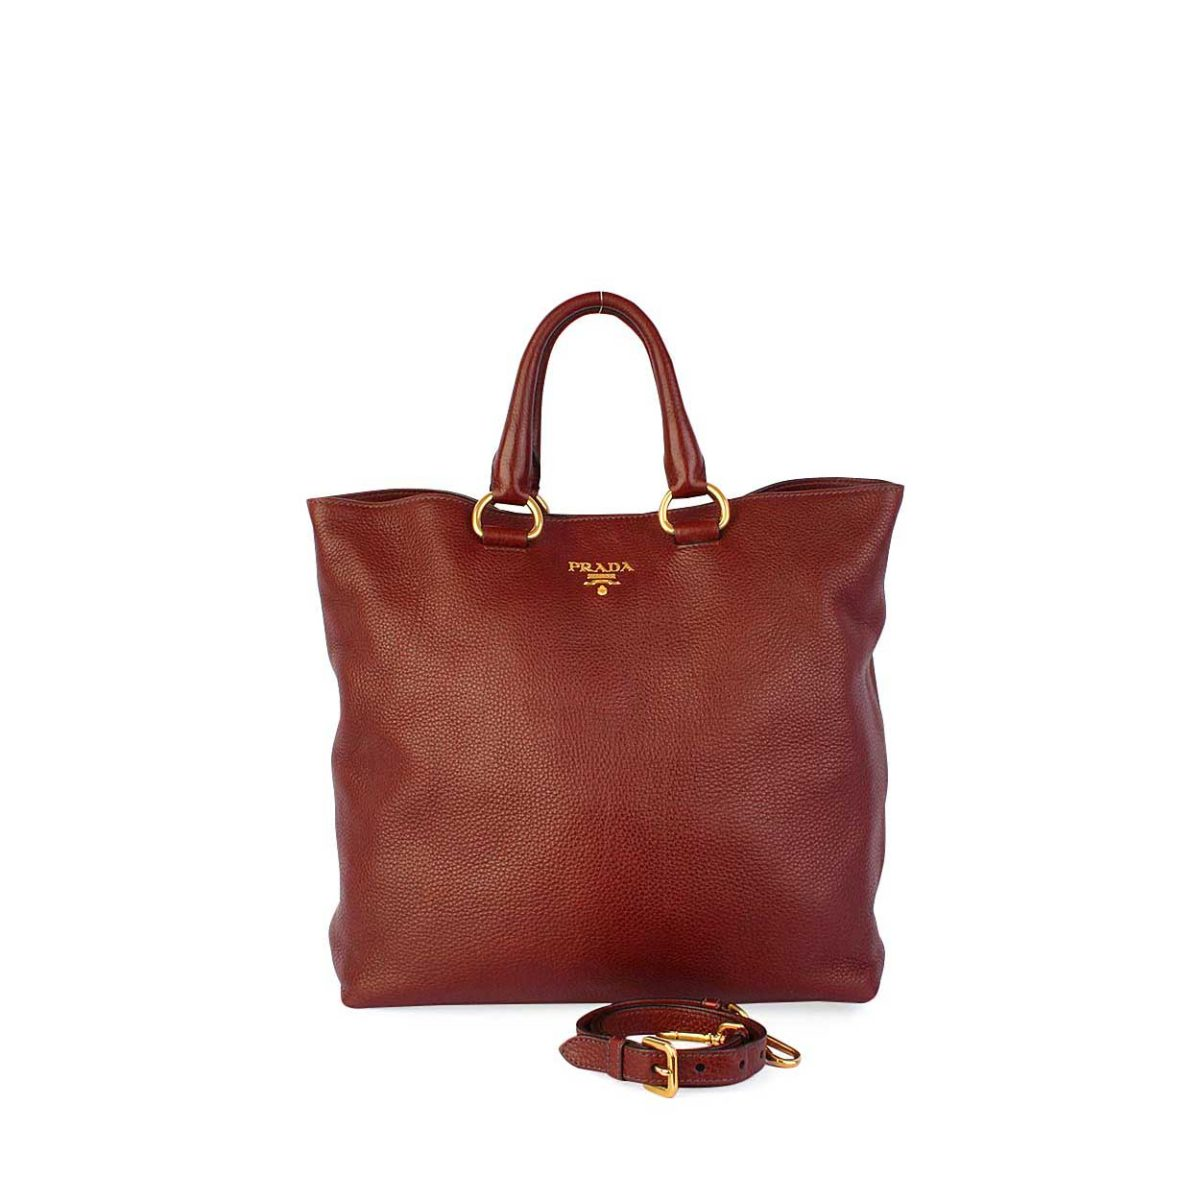 b37ccfea0d PRADA Rubino Vitello Daino Leather Shopping Tote Brown